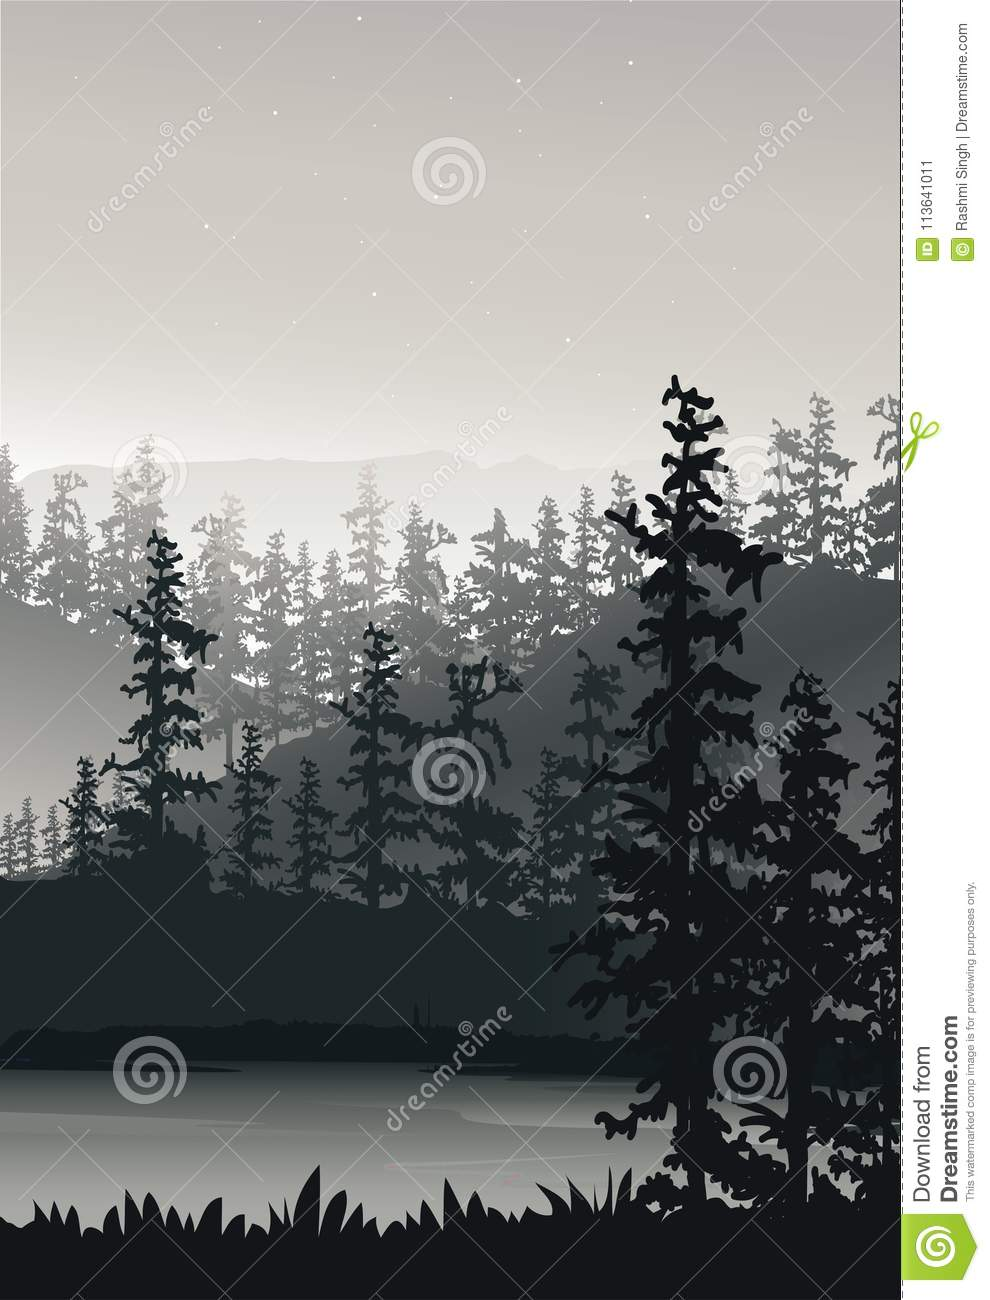 Amazing Wallpaper Mountain Portrait - nature-background-river-tree-mountain-fog-snow-mountain-portrait-view-wallpaper-vector-illustration-nature-113641011  Perfect Image Reference_645176.jpg